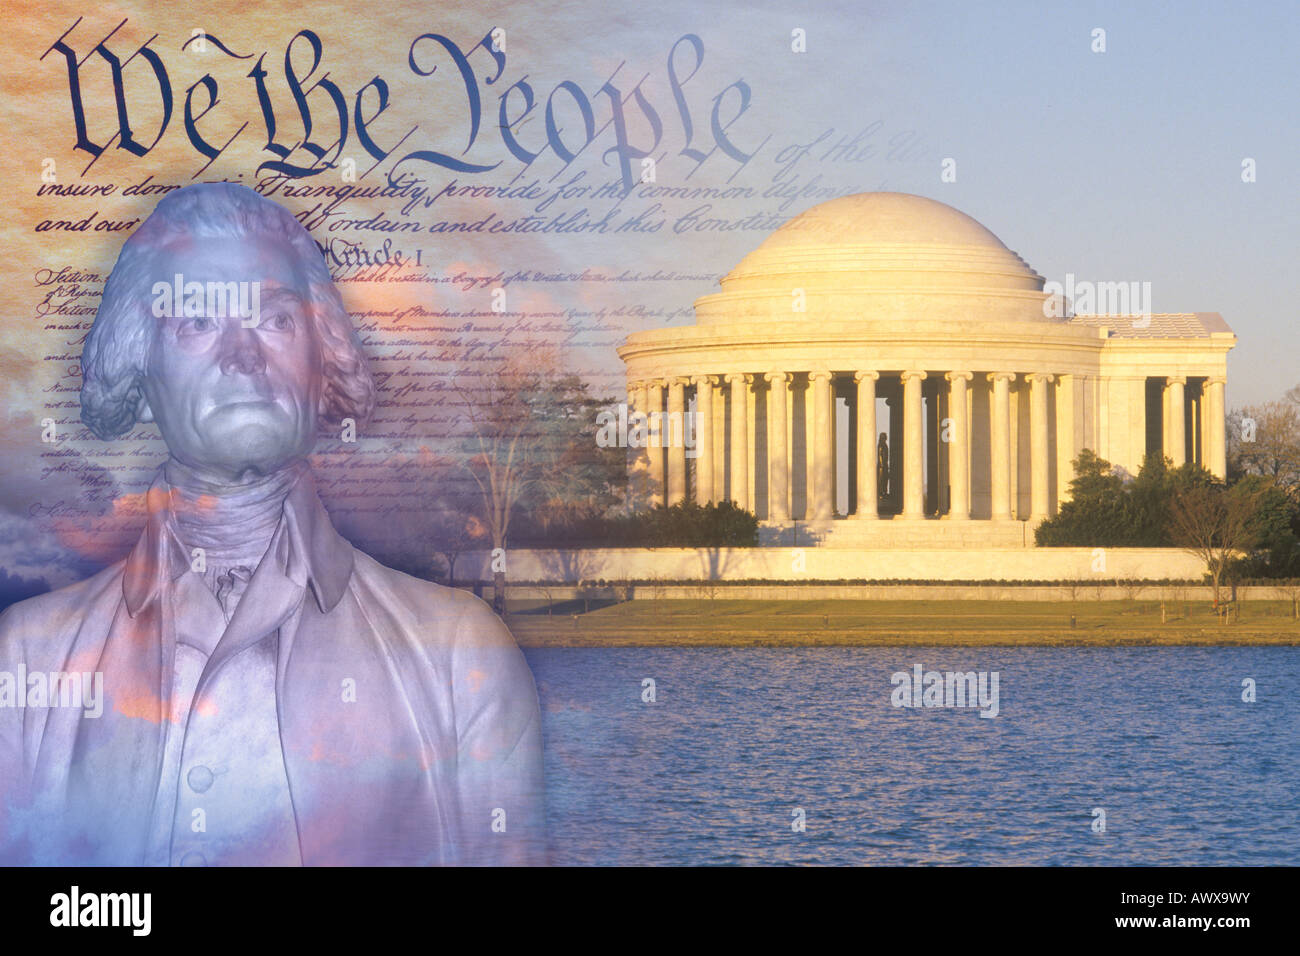 Composite image of Jefferson Memorial, US Constitution, and bust of Thomas Jefferson - Stock Image